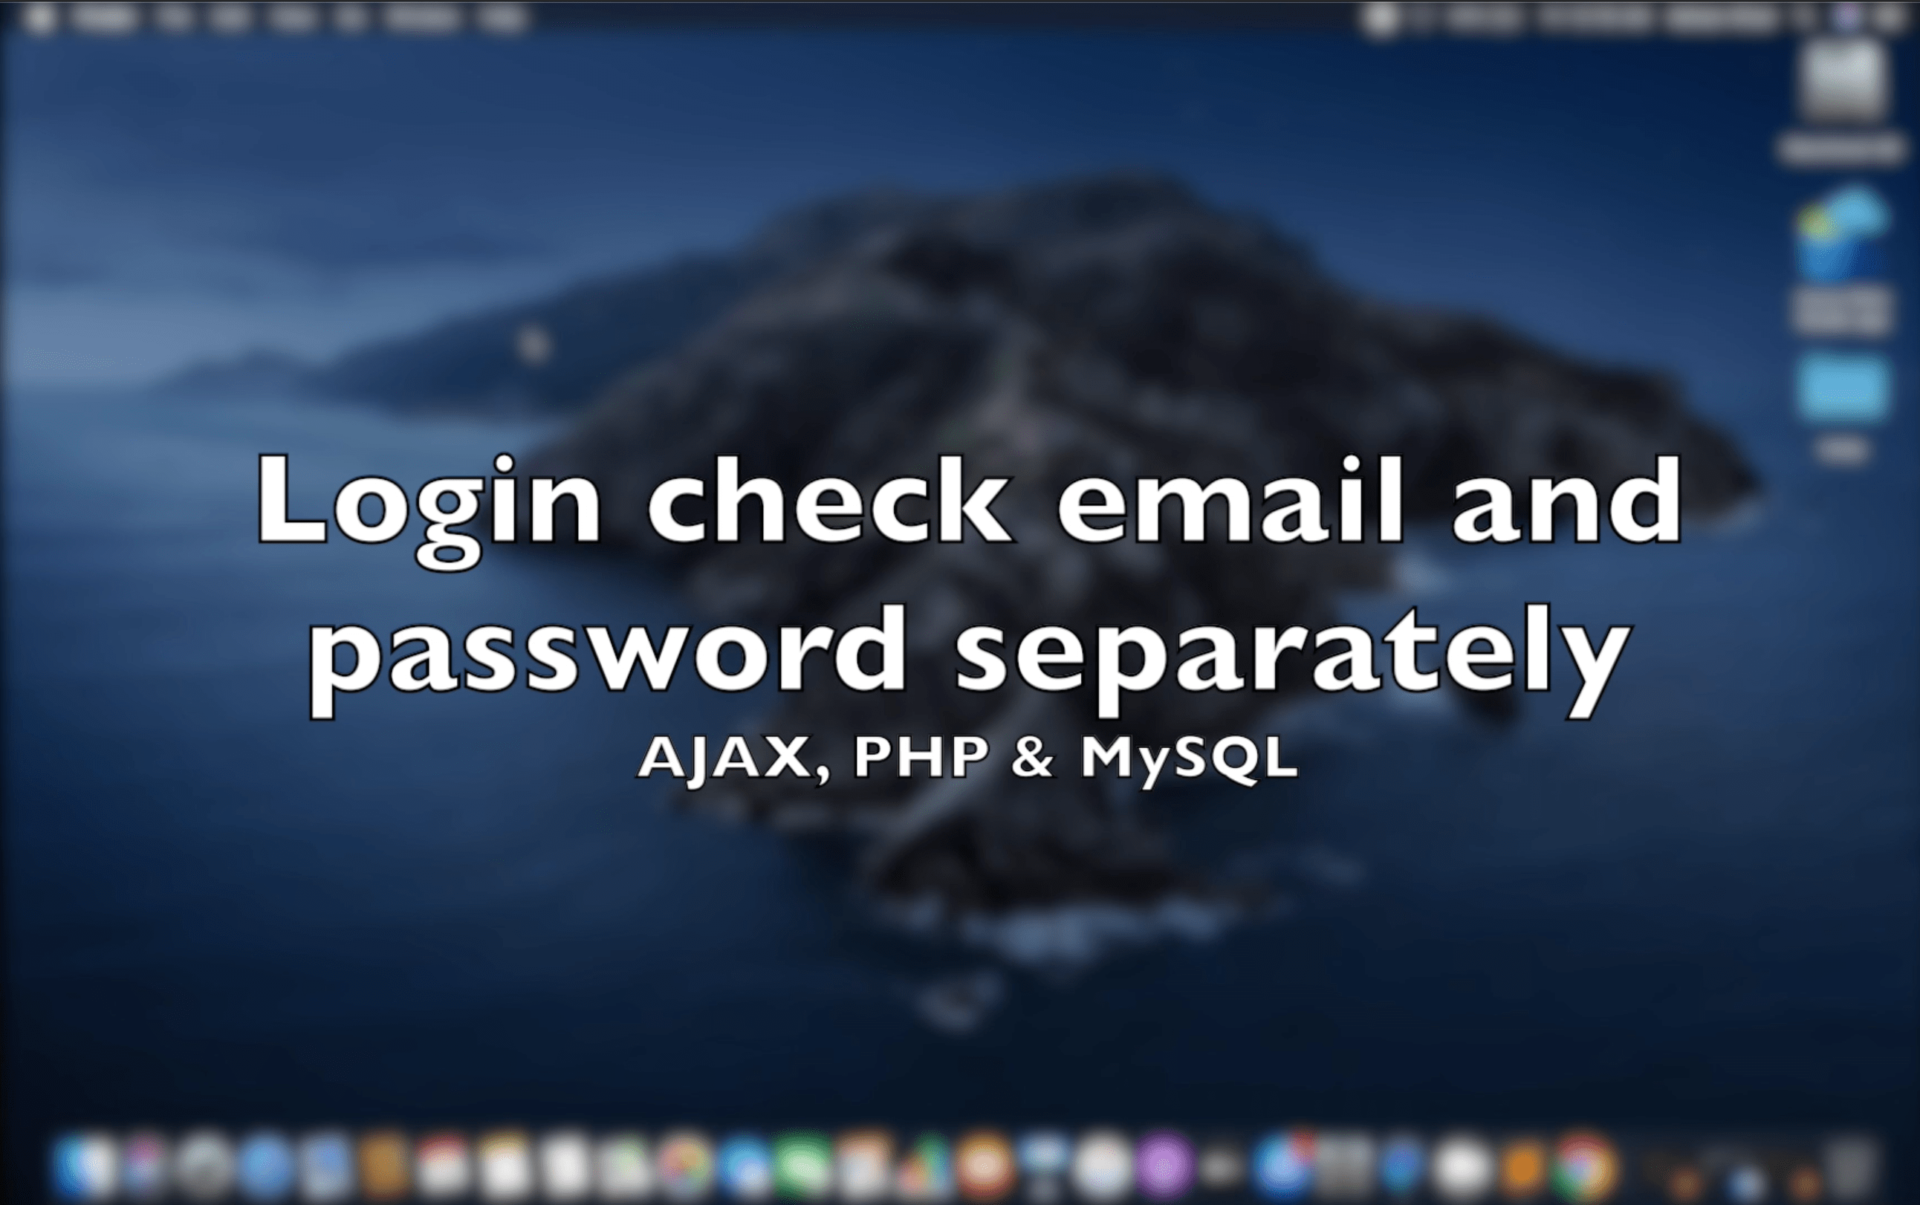 Login check email and password separately - Javascript, AJAX, PHP, MySQL